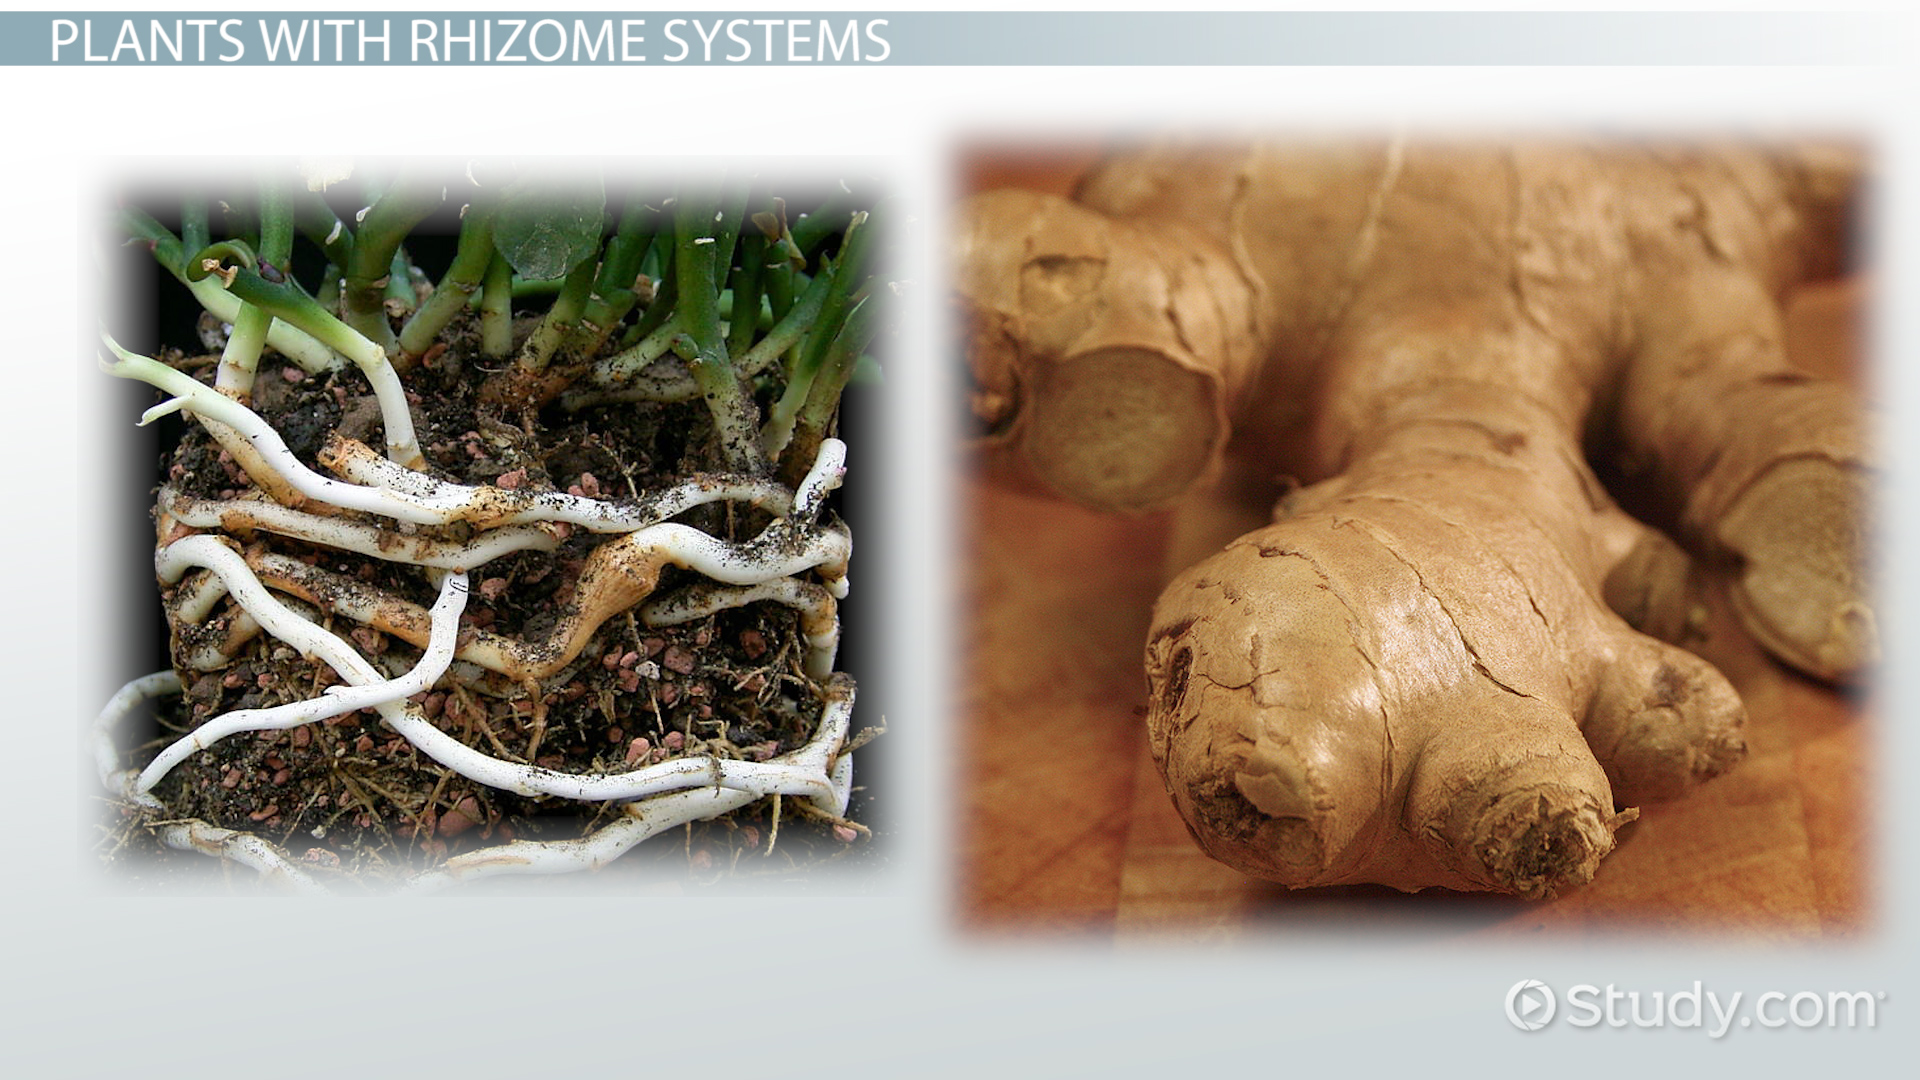 rhizomes  definition  u0026 examples